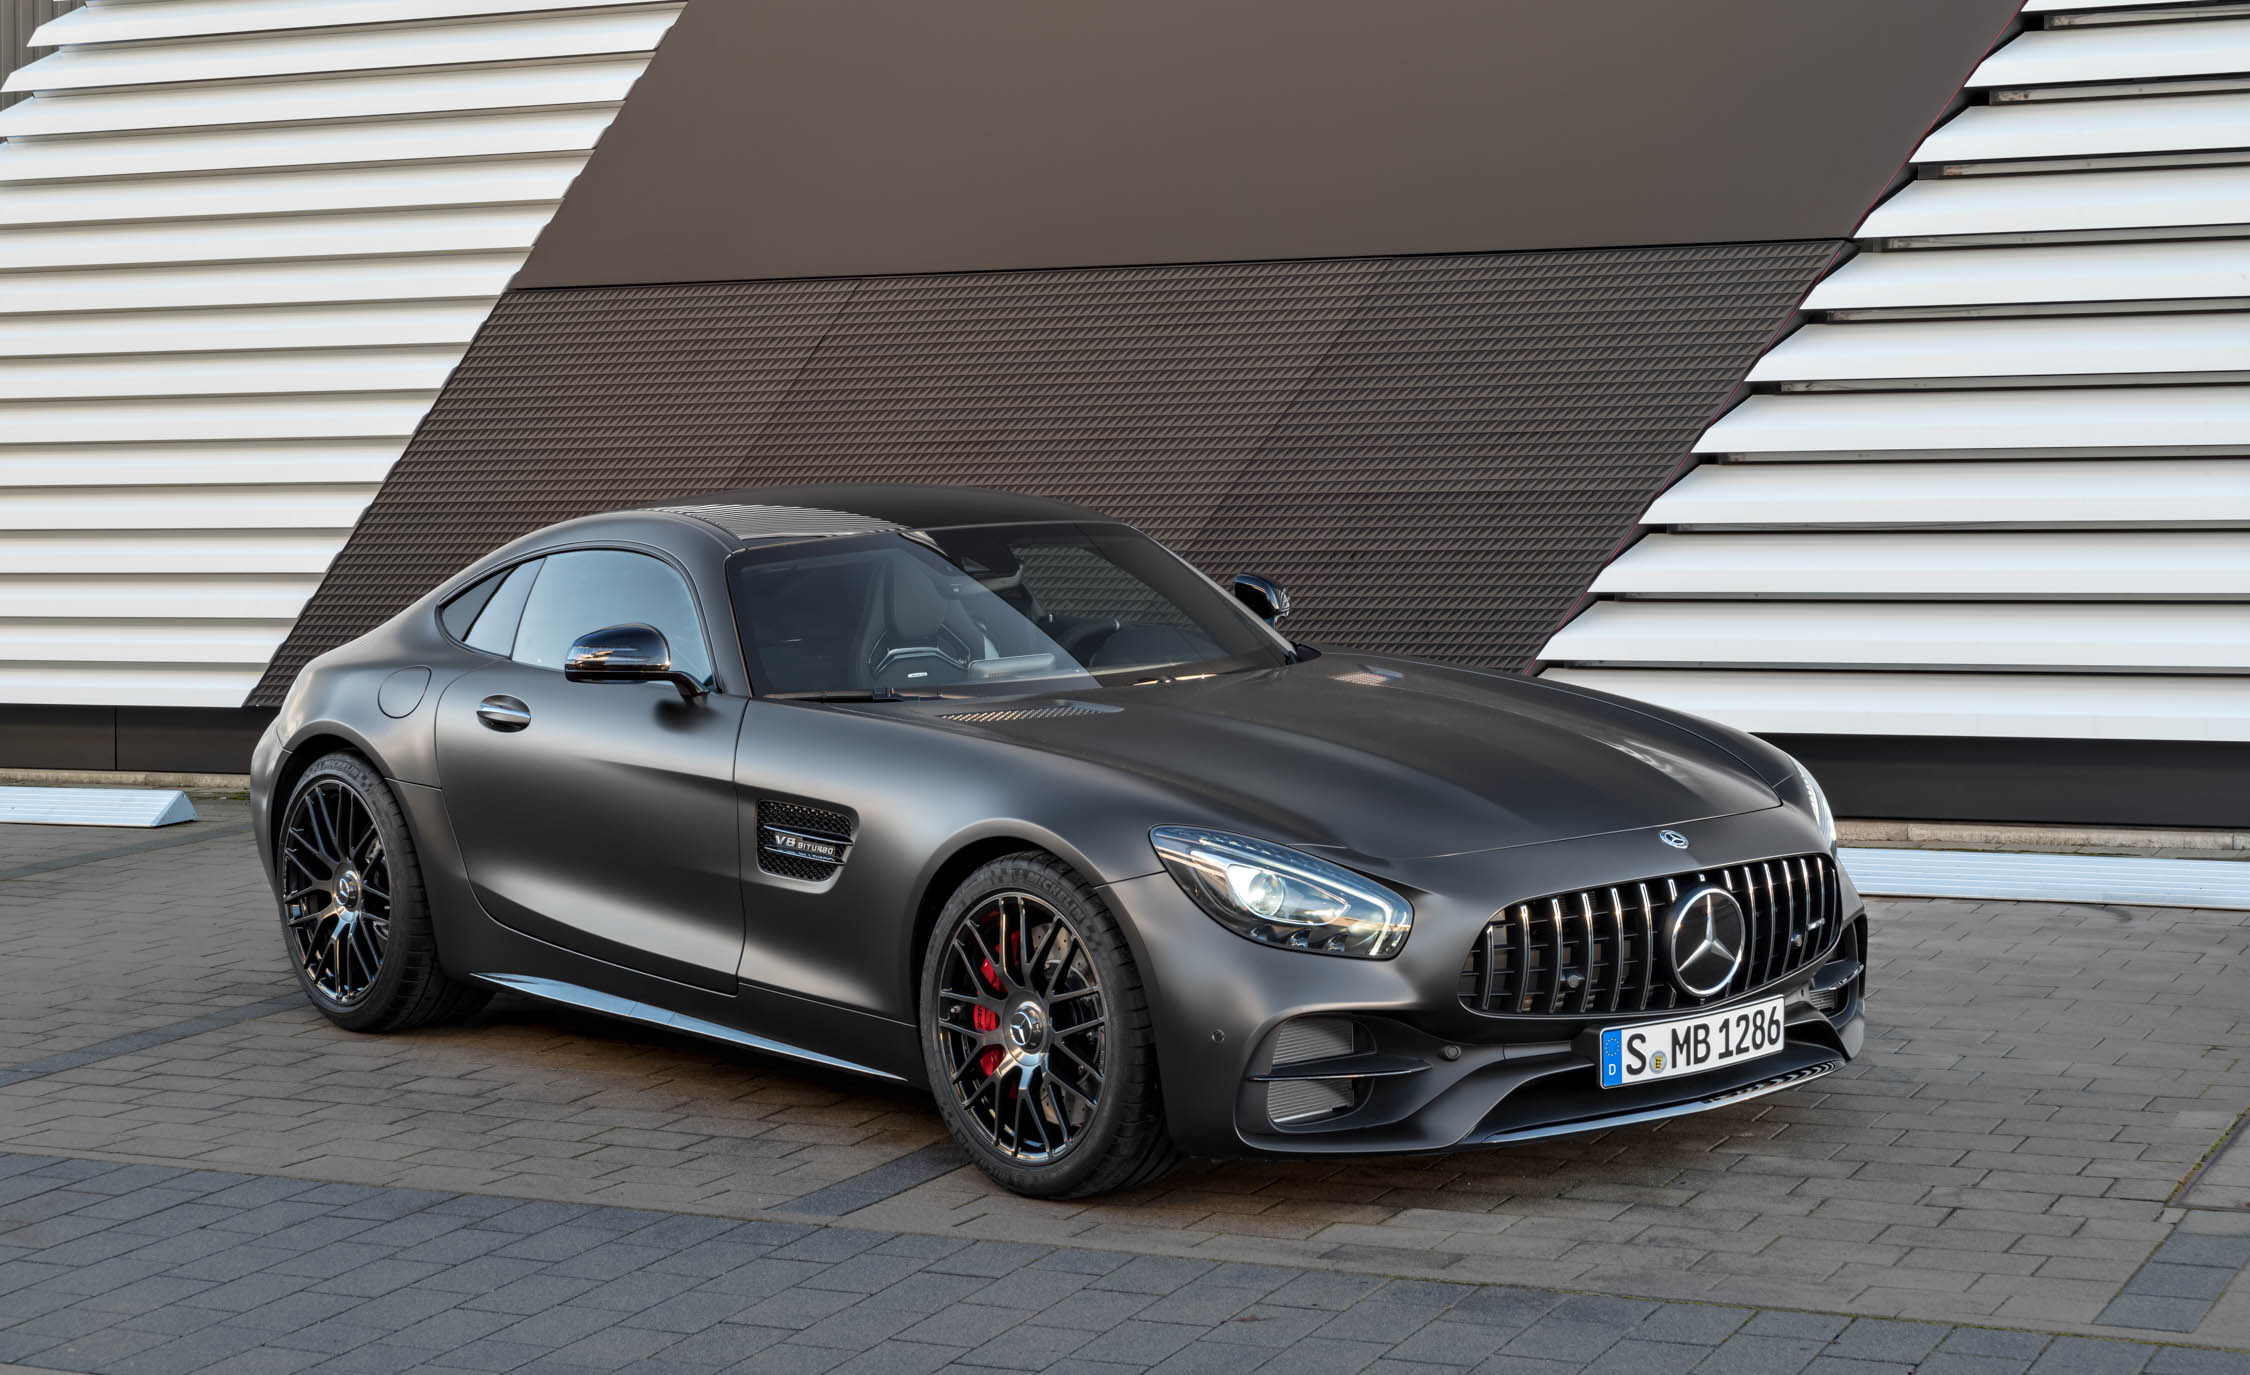 2018 Mercedes Amg Gt C Exterior (Photo 4 of 23)